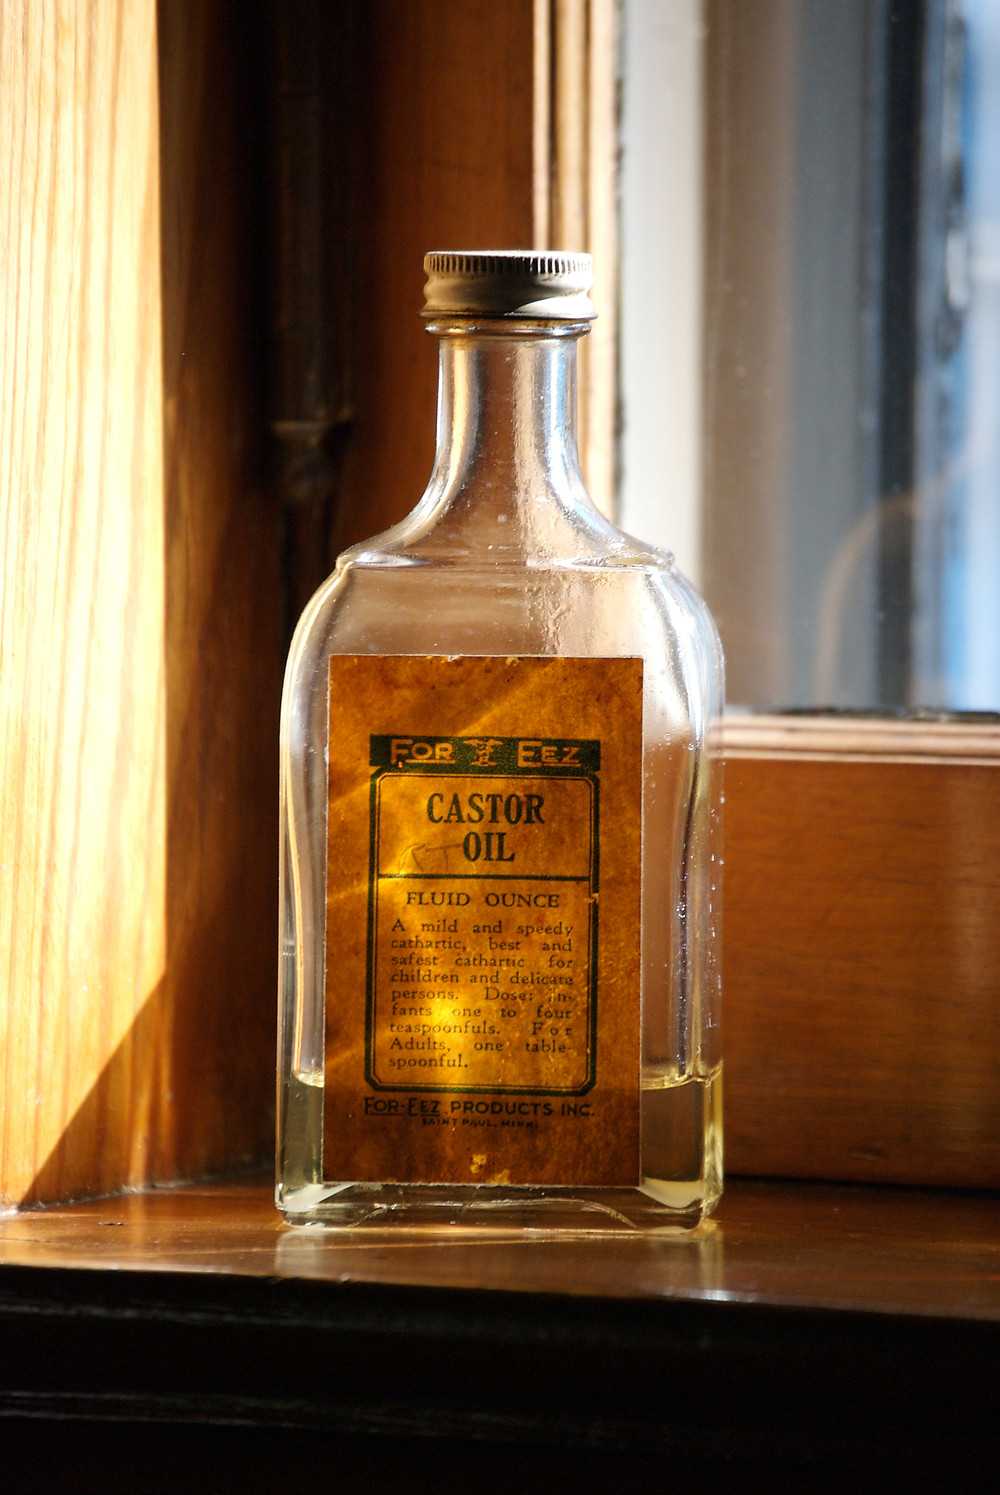 Old-fashioned bottle of castor oil in sunny windowsill.